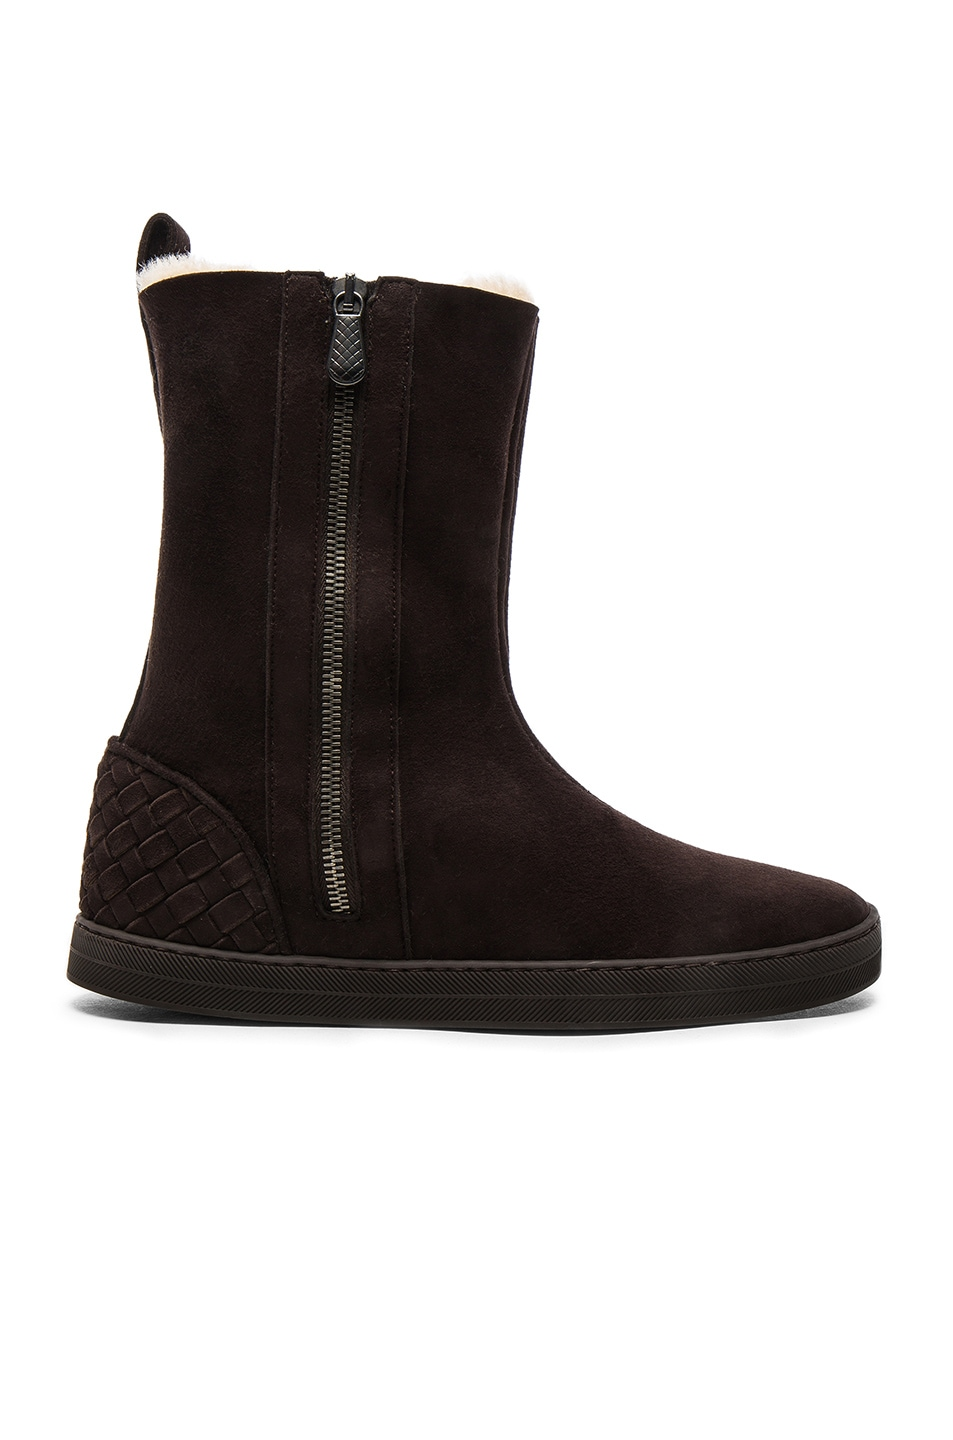 Image 1 of Bottega Veneta Fur Lined Suede Boots in Espresso